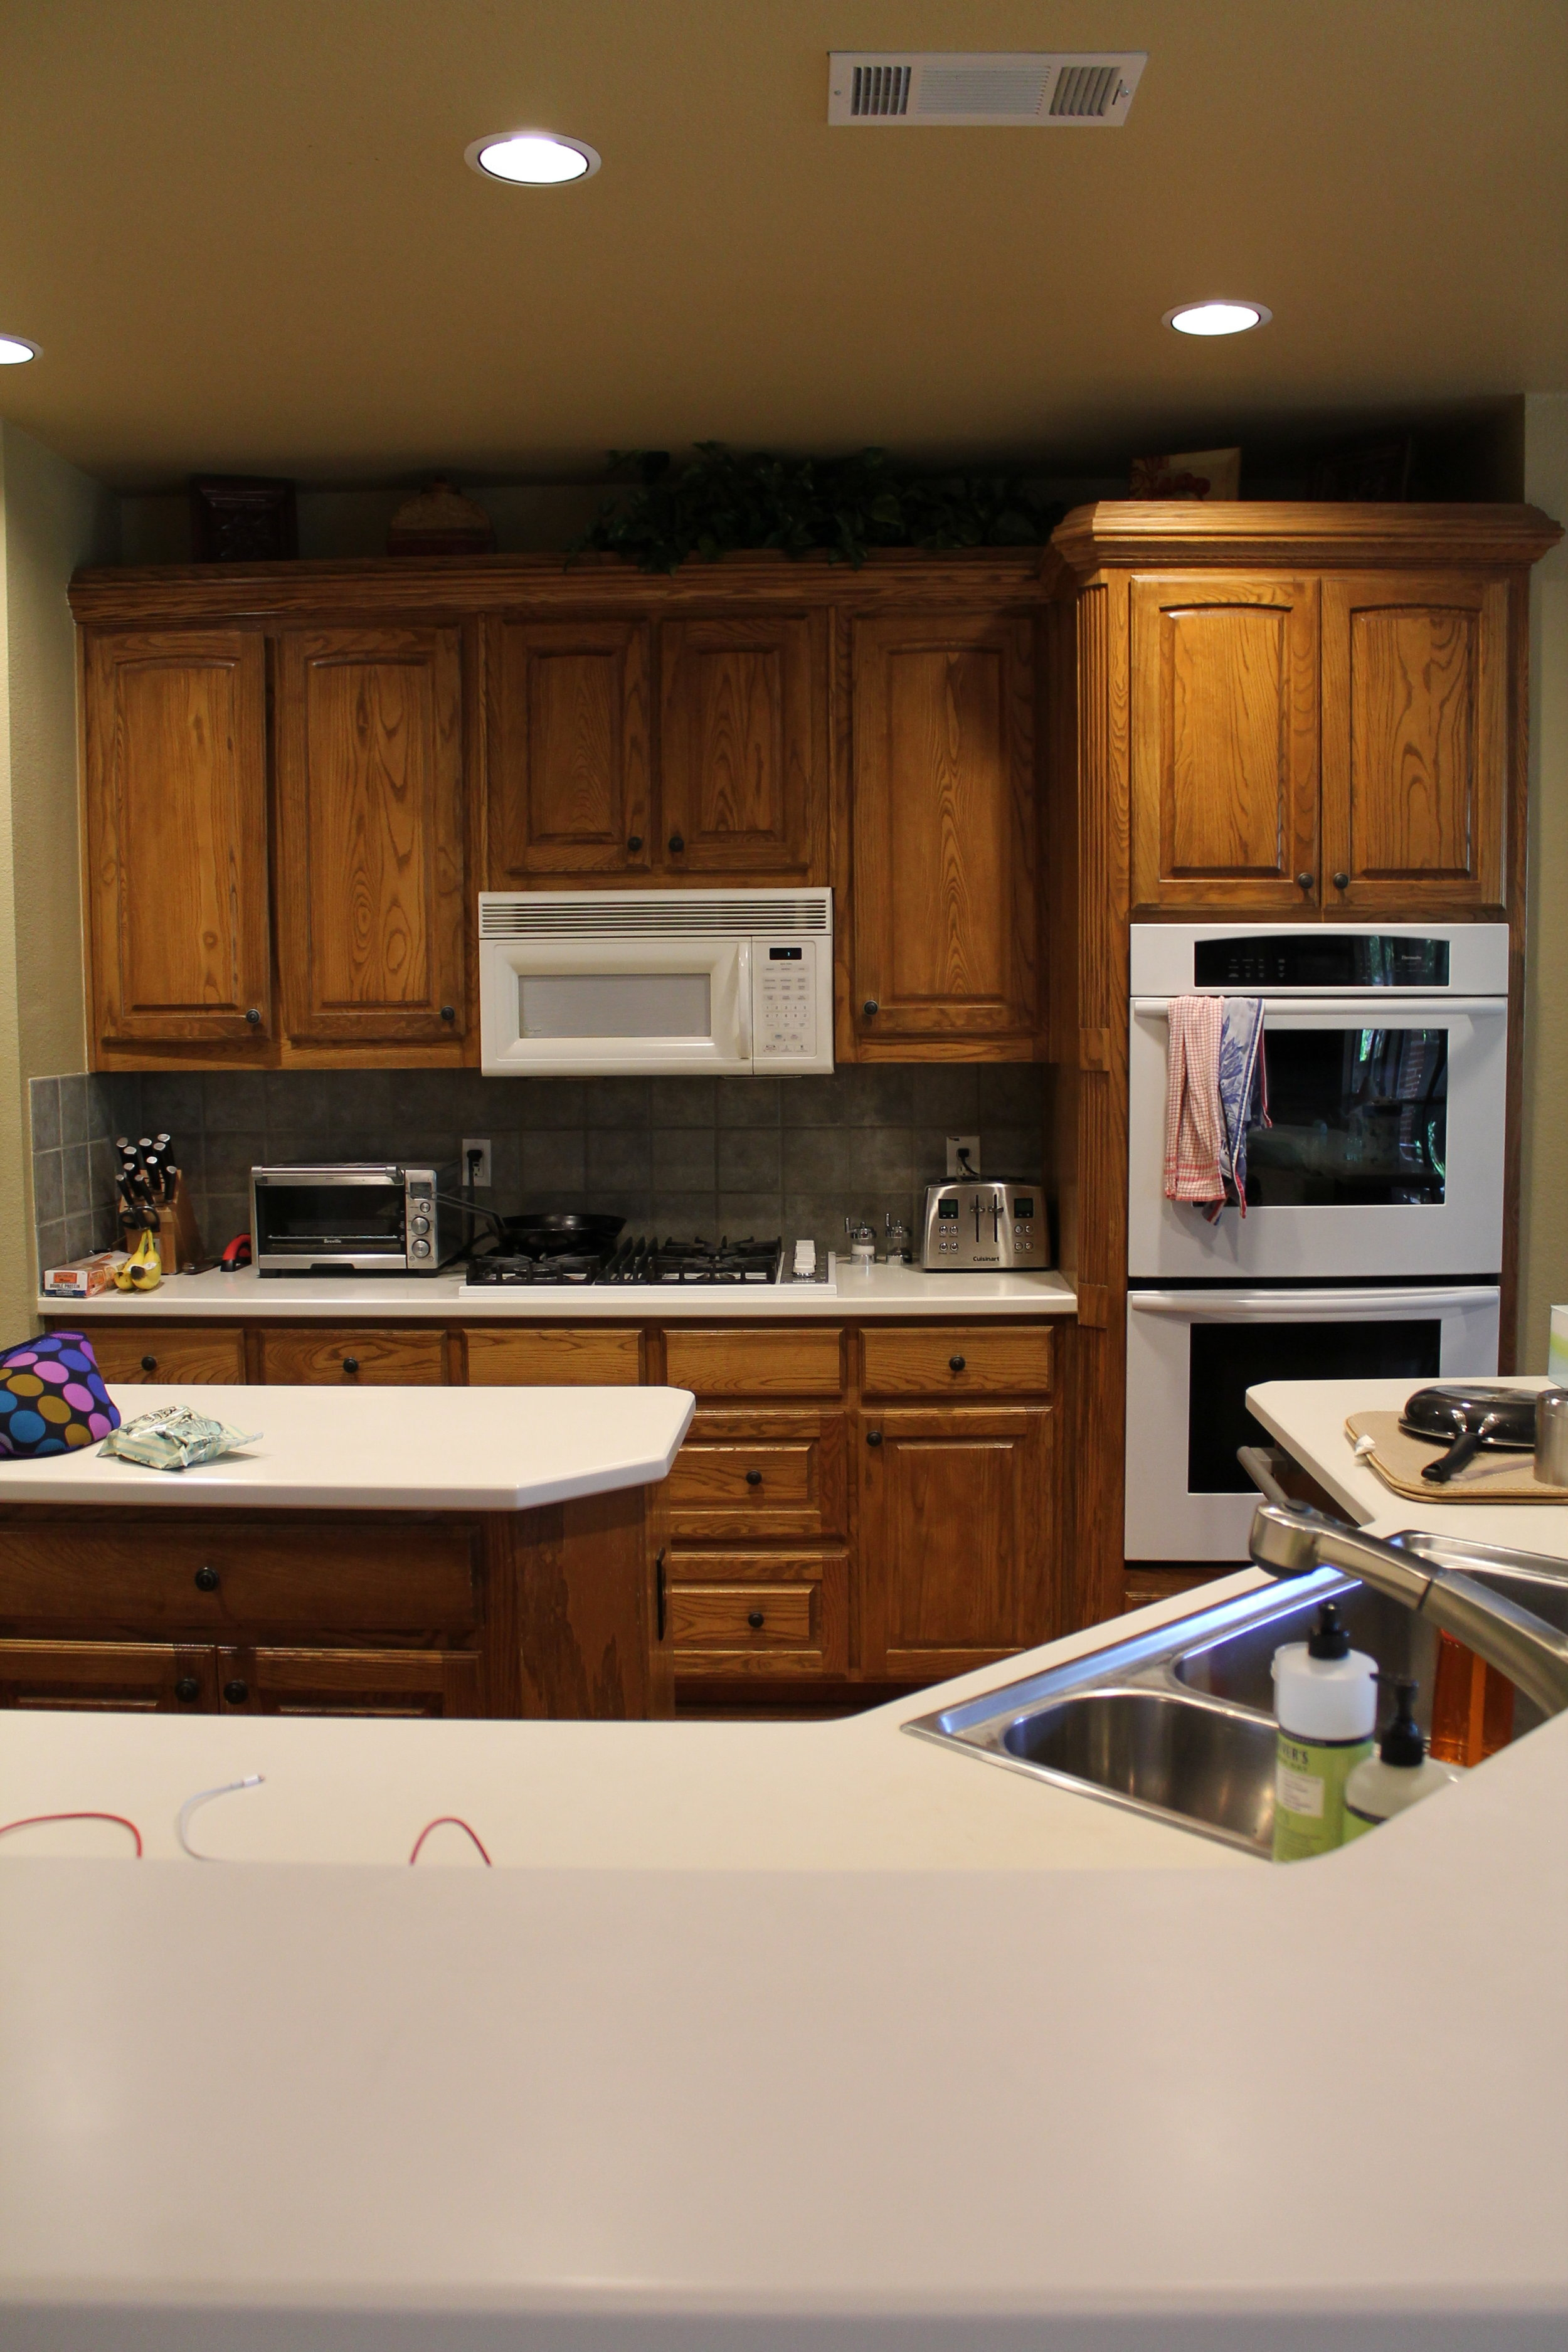 Southlake Kitchen Before and After.JPG